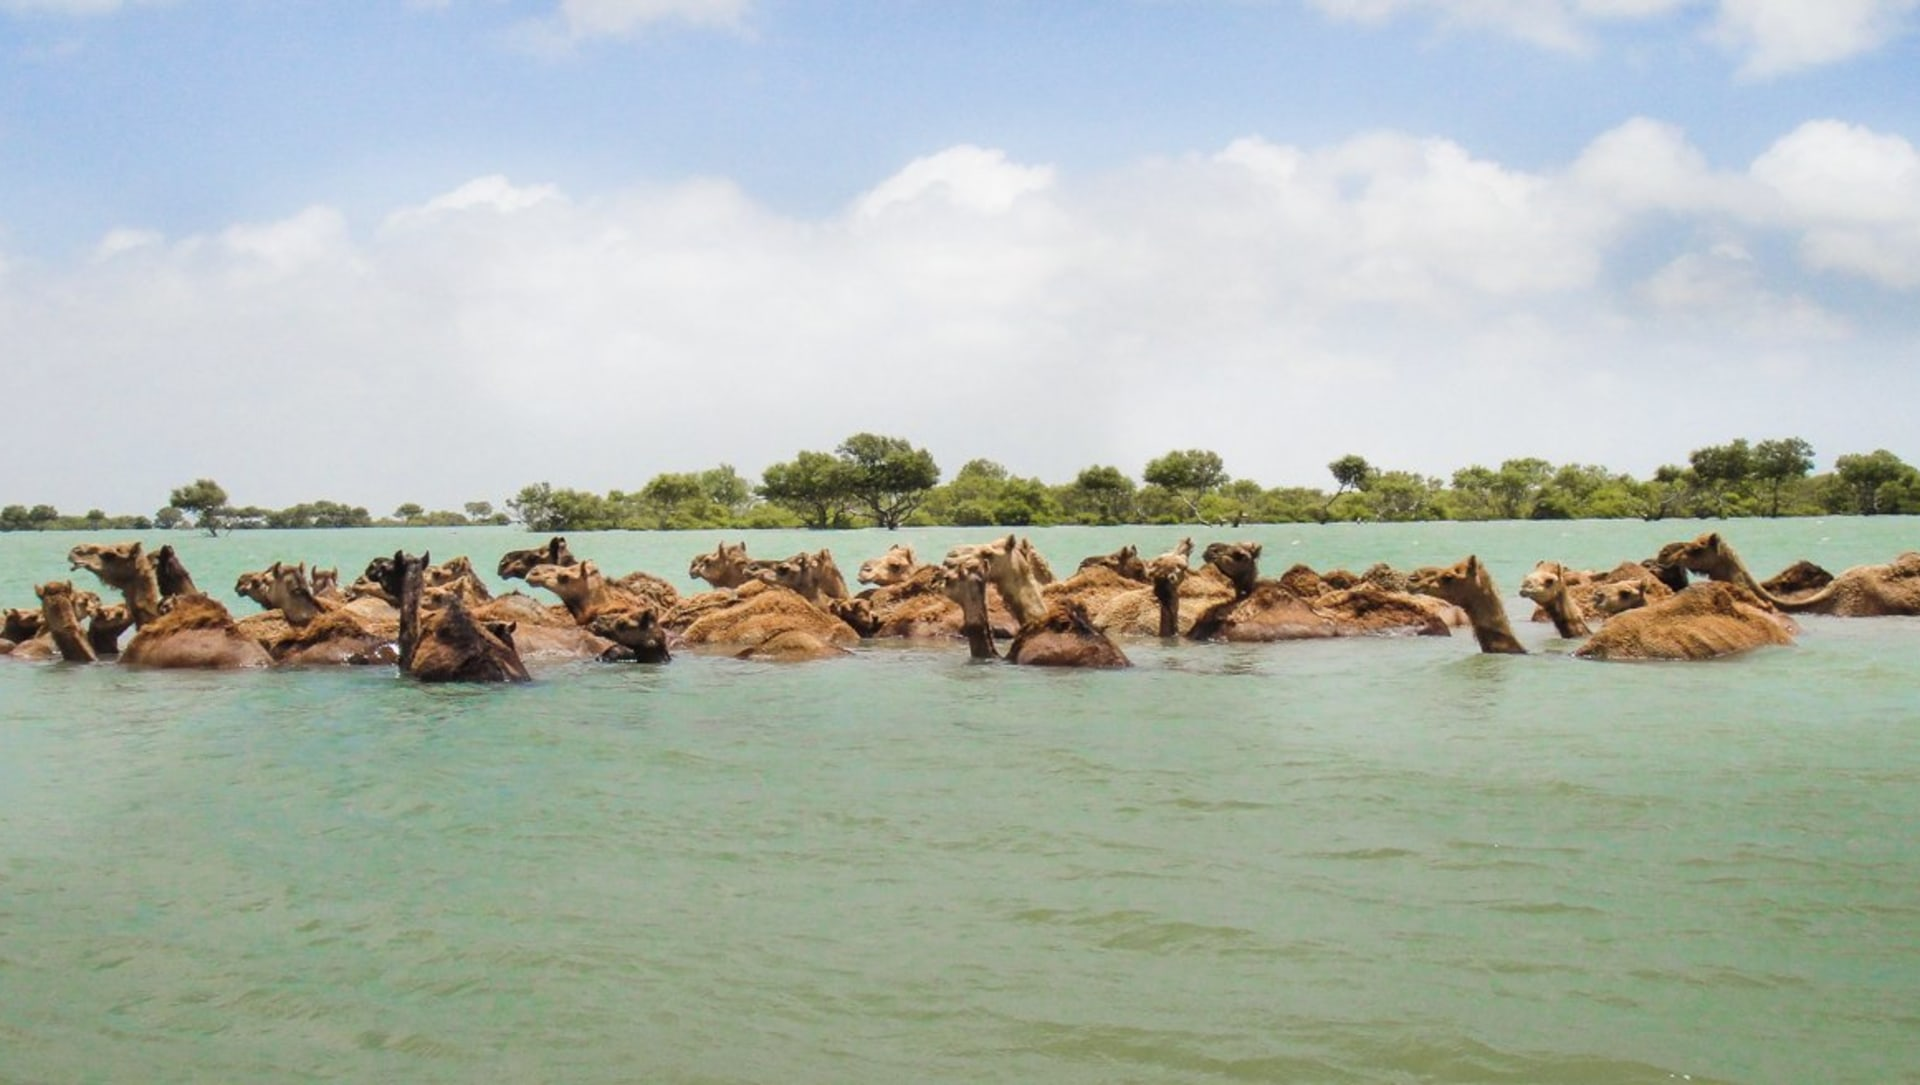 The swimming camels of Kutch